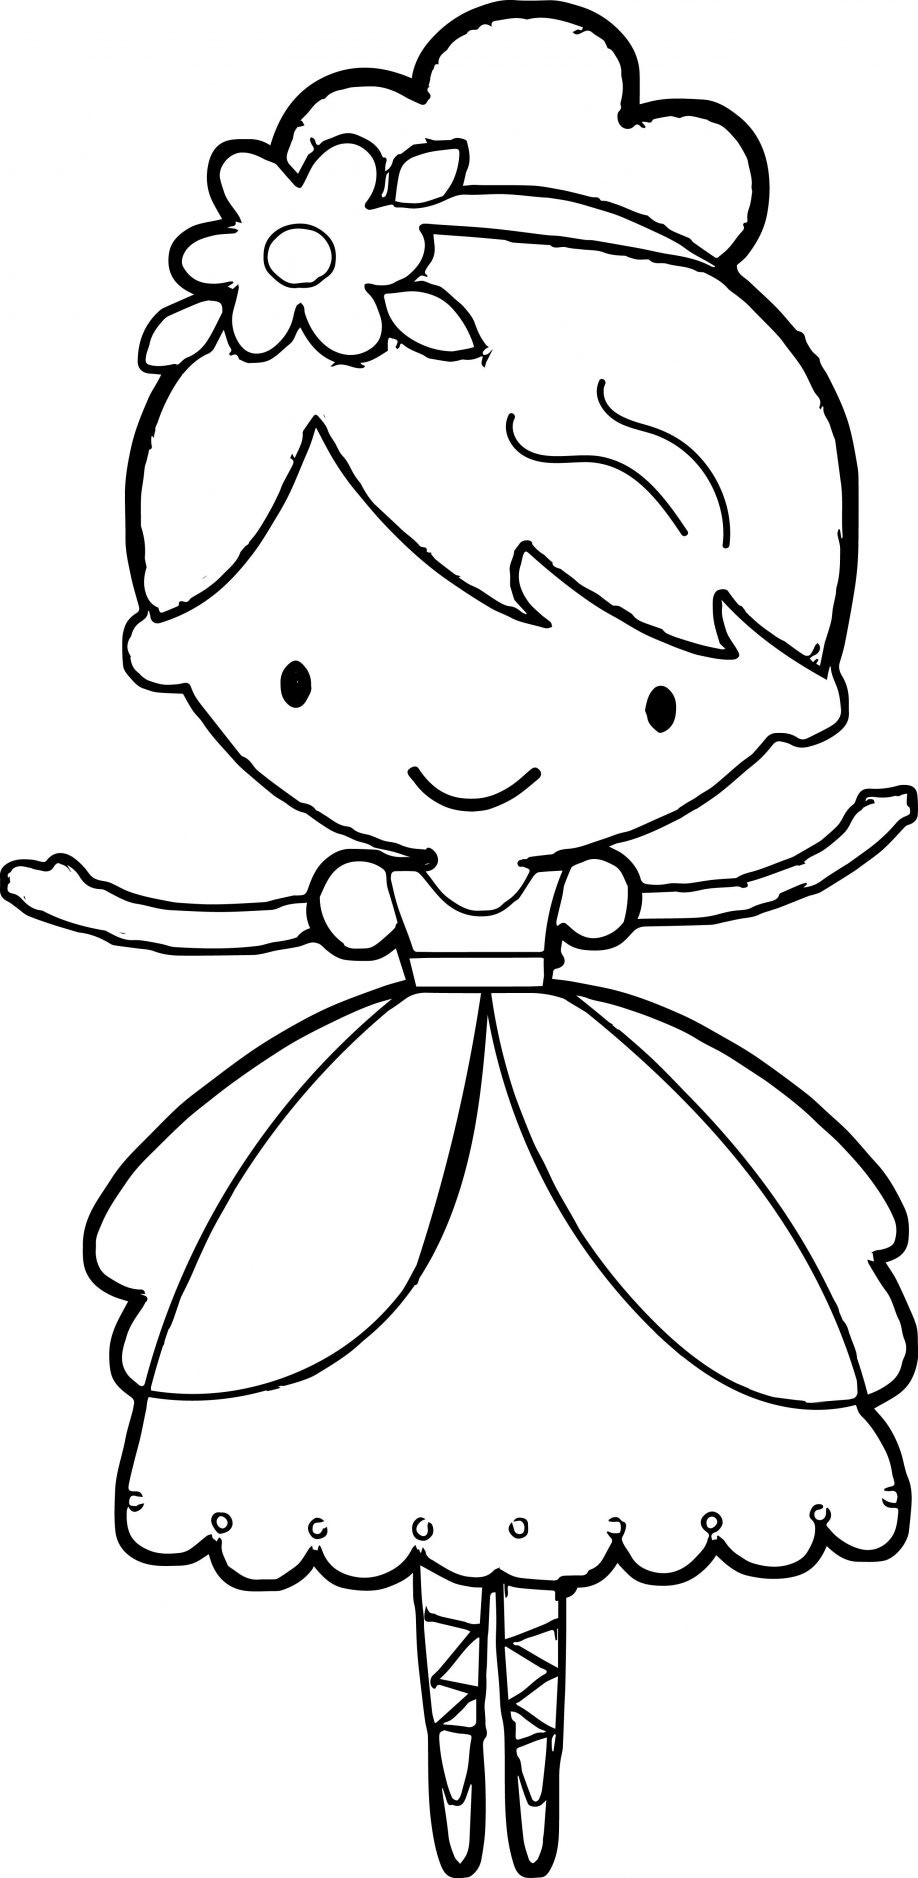 Best ideas about Ballerina Coloring Pages For Girls . Save or Pin 25 Ballerina Coloring Pages ColoringStar Now.